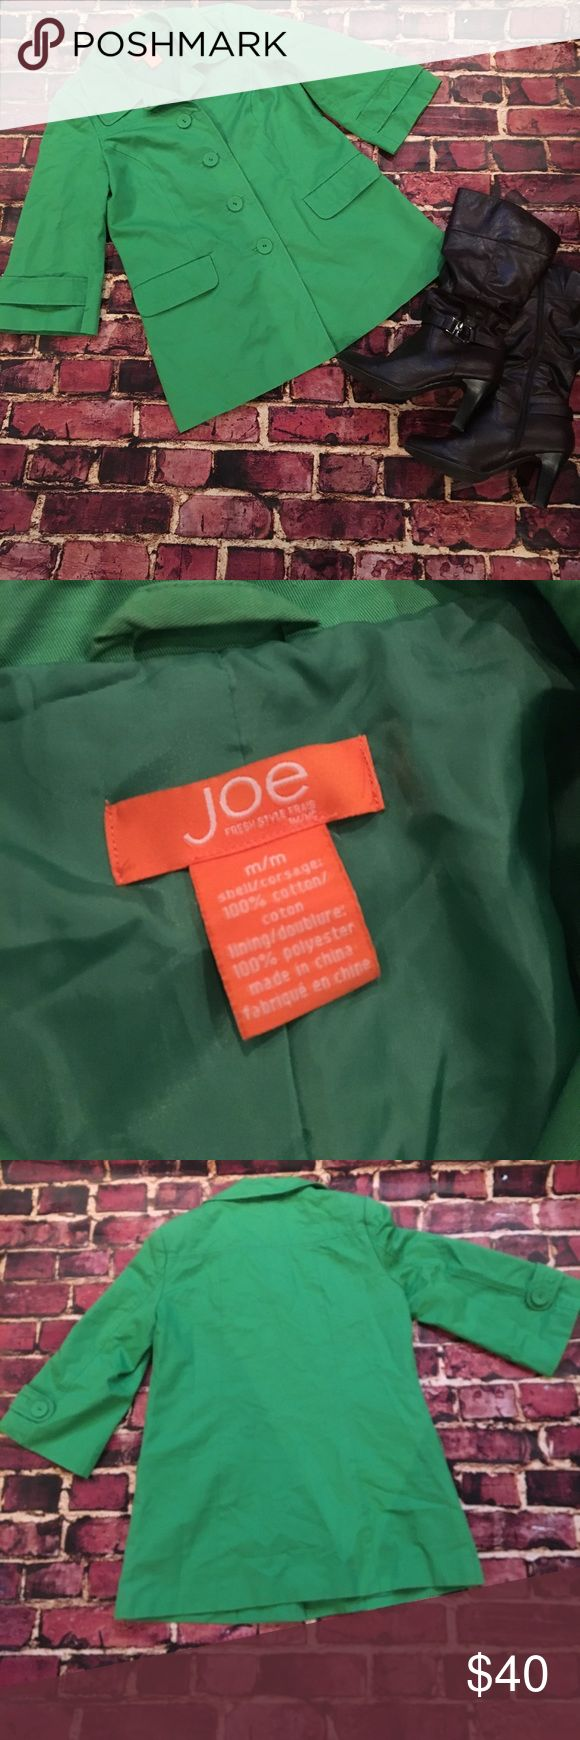 Joe Fresh Bright Green Jacket Size Medium This jacket is a gently used but in fantastic condition! It's a beautiful green that's going to look amazing with the fall colors! Joe Fresh Jackets & Coats